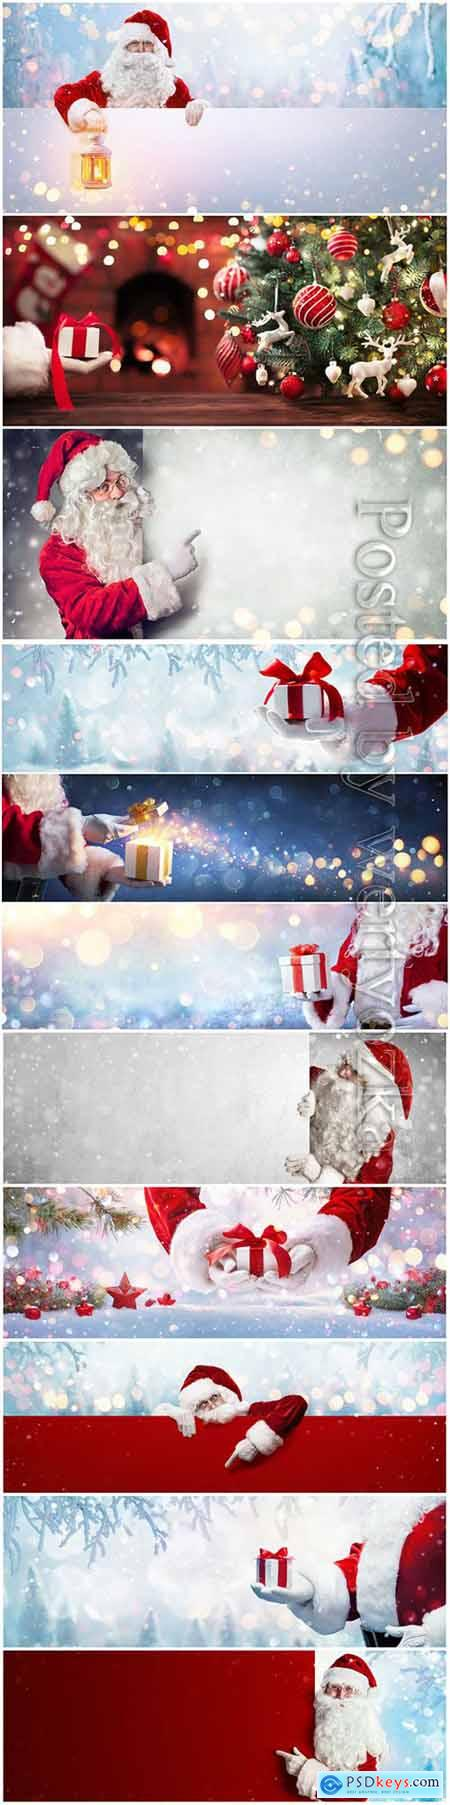 Santa Claus gift, Christmas holiday background